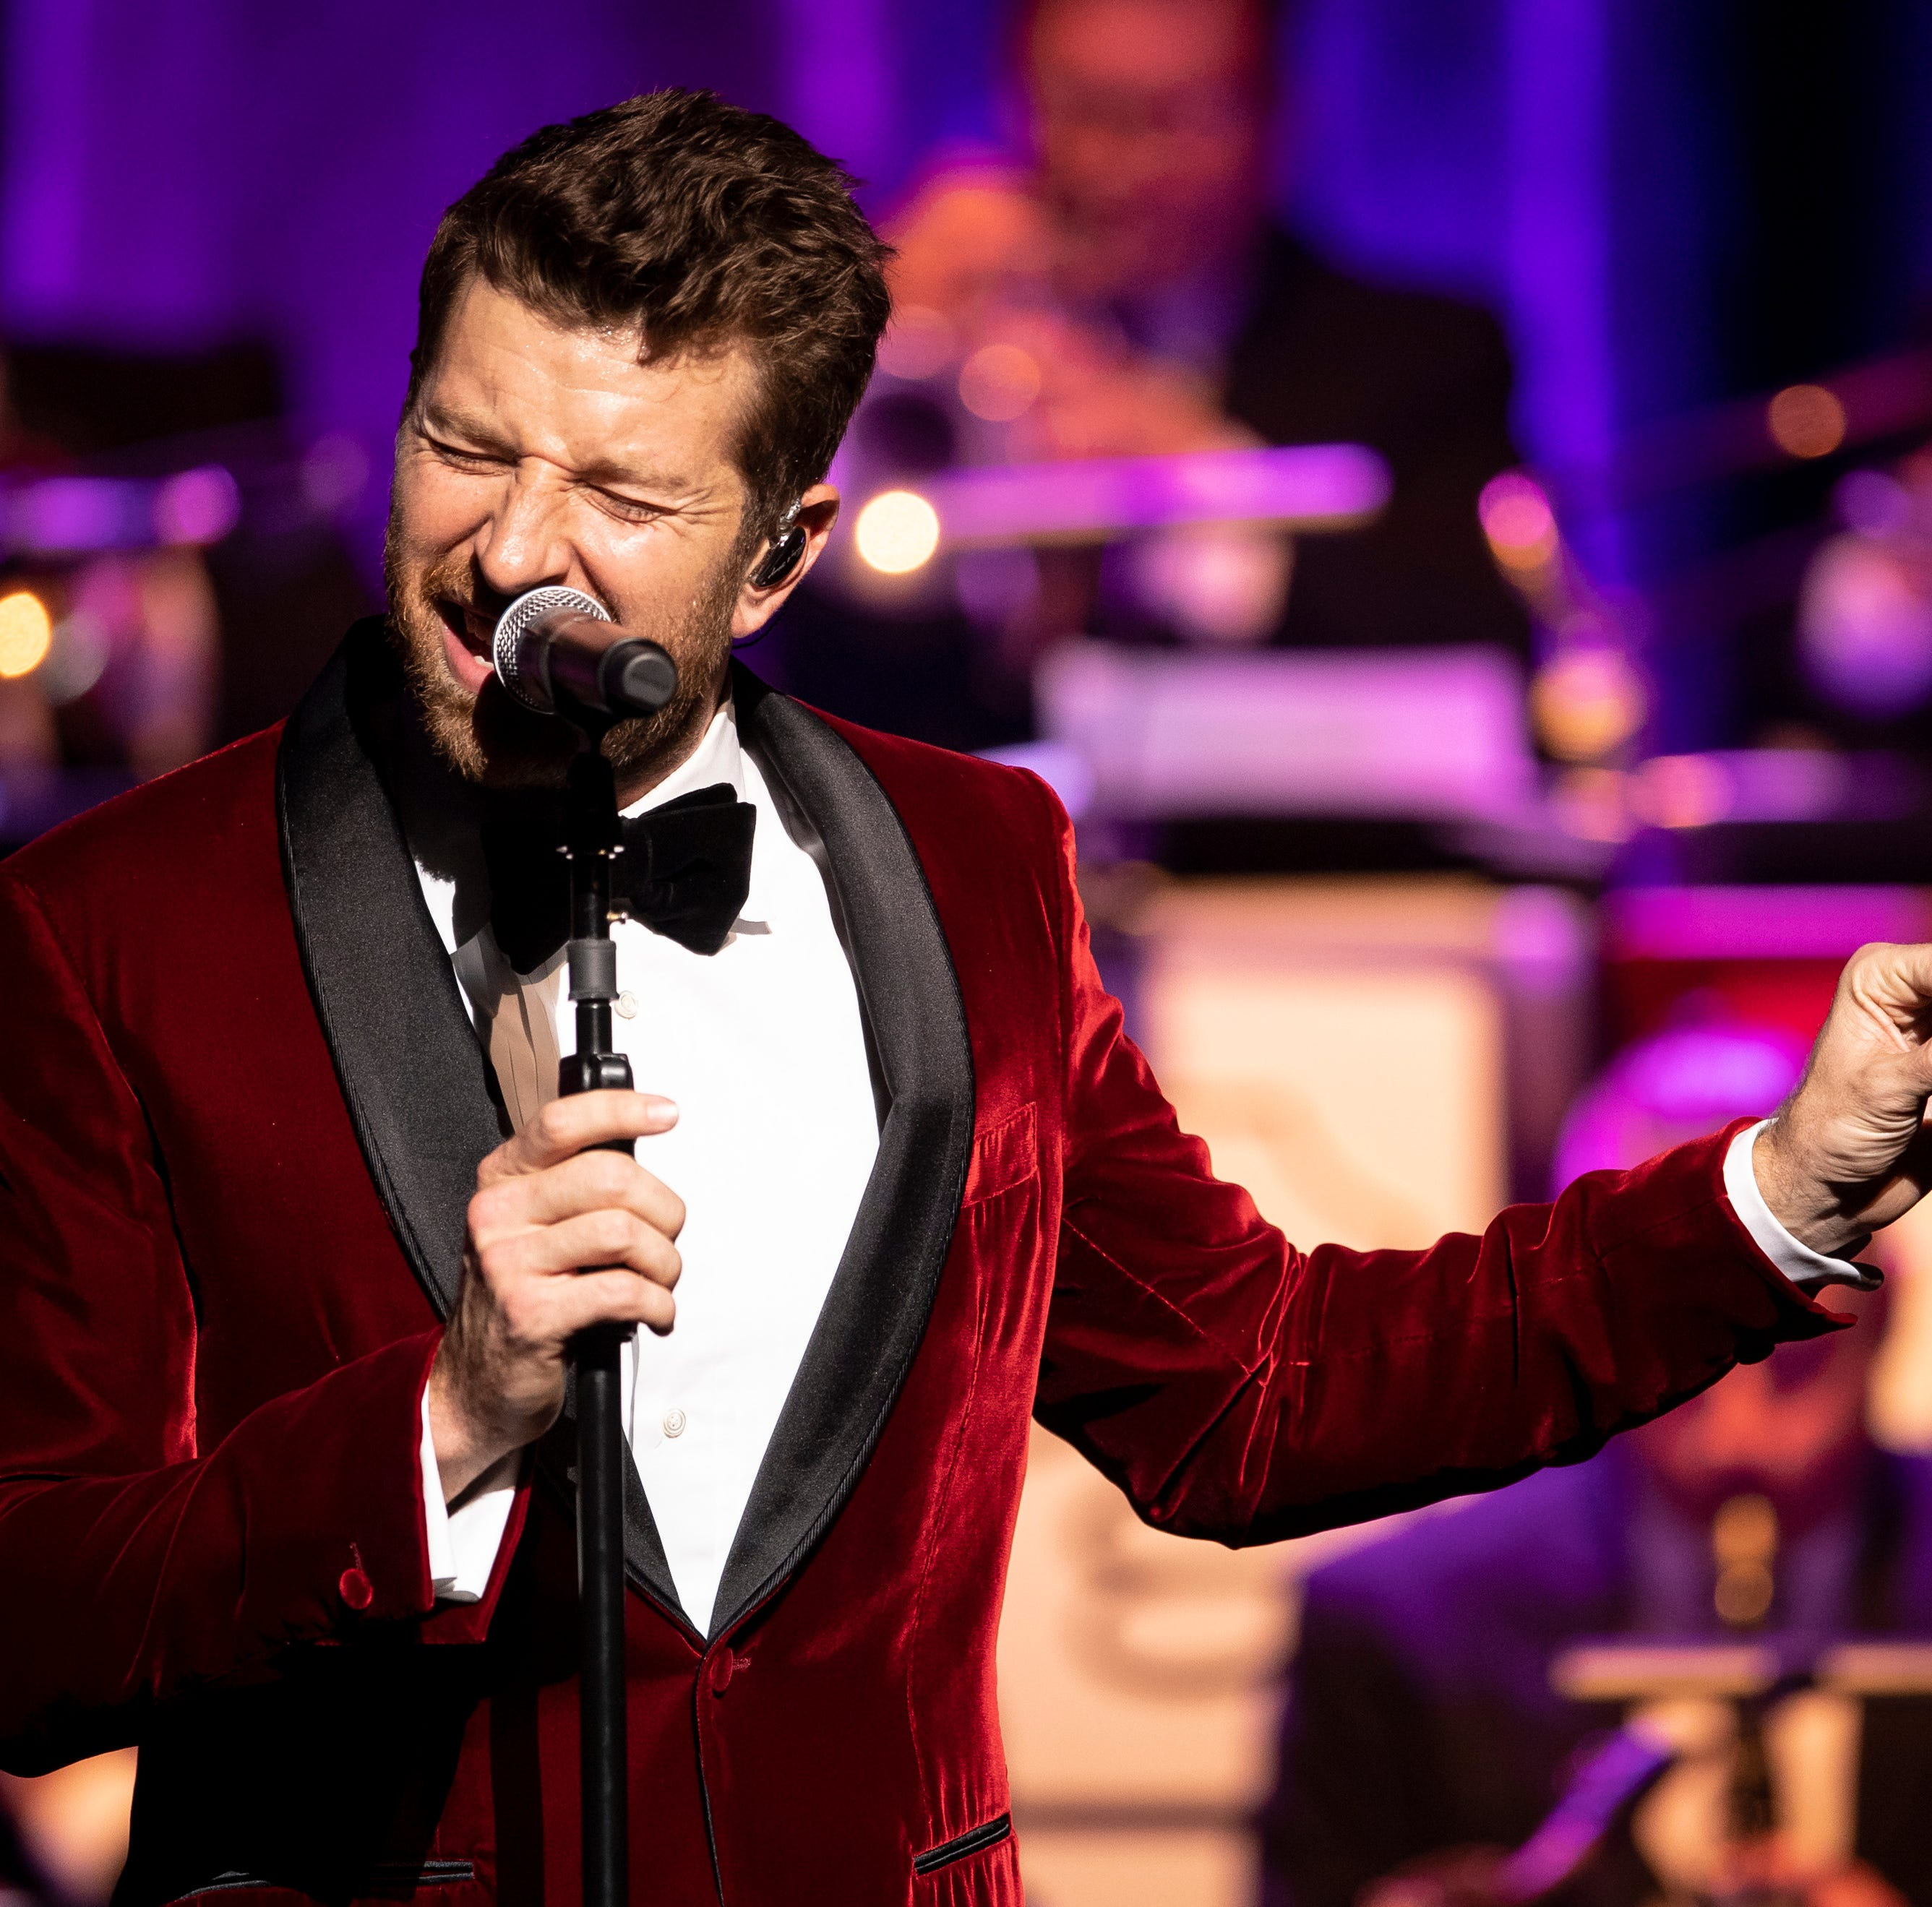 Brett Eldredge glows with memories, holiday spirit at CMA Theater for Christmas